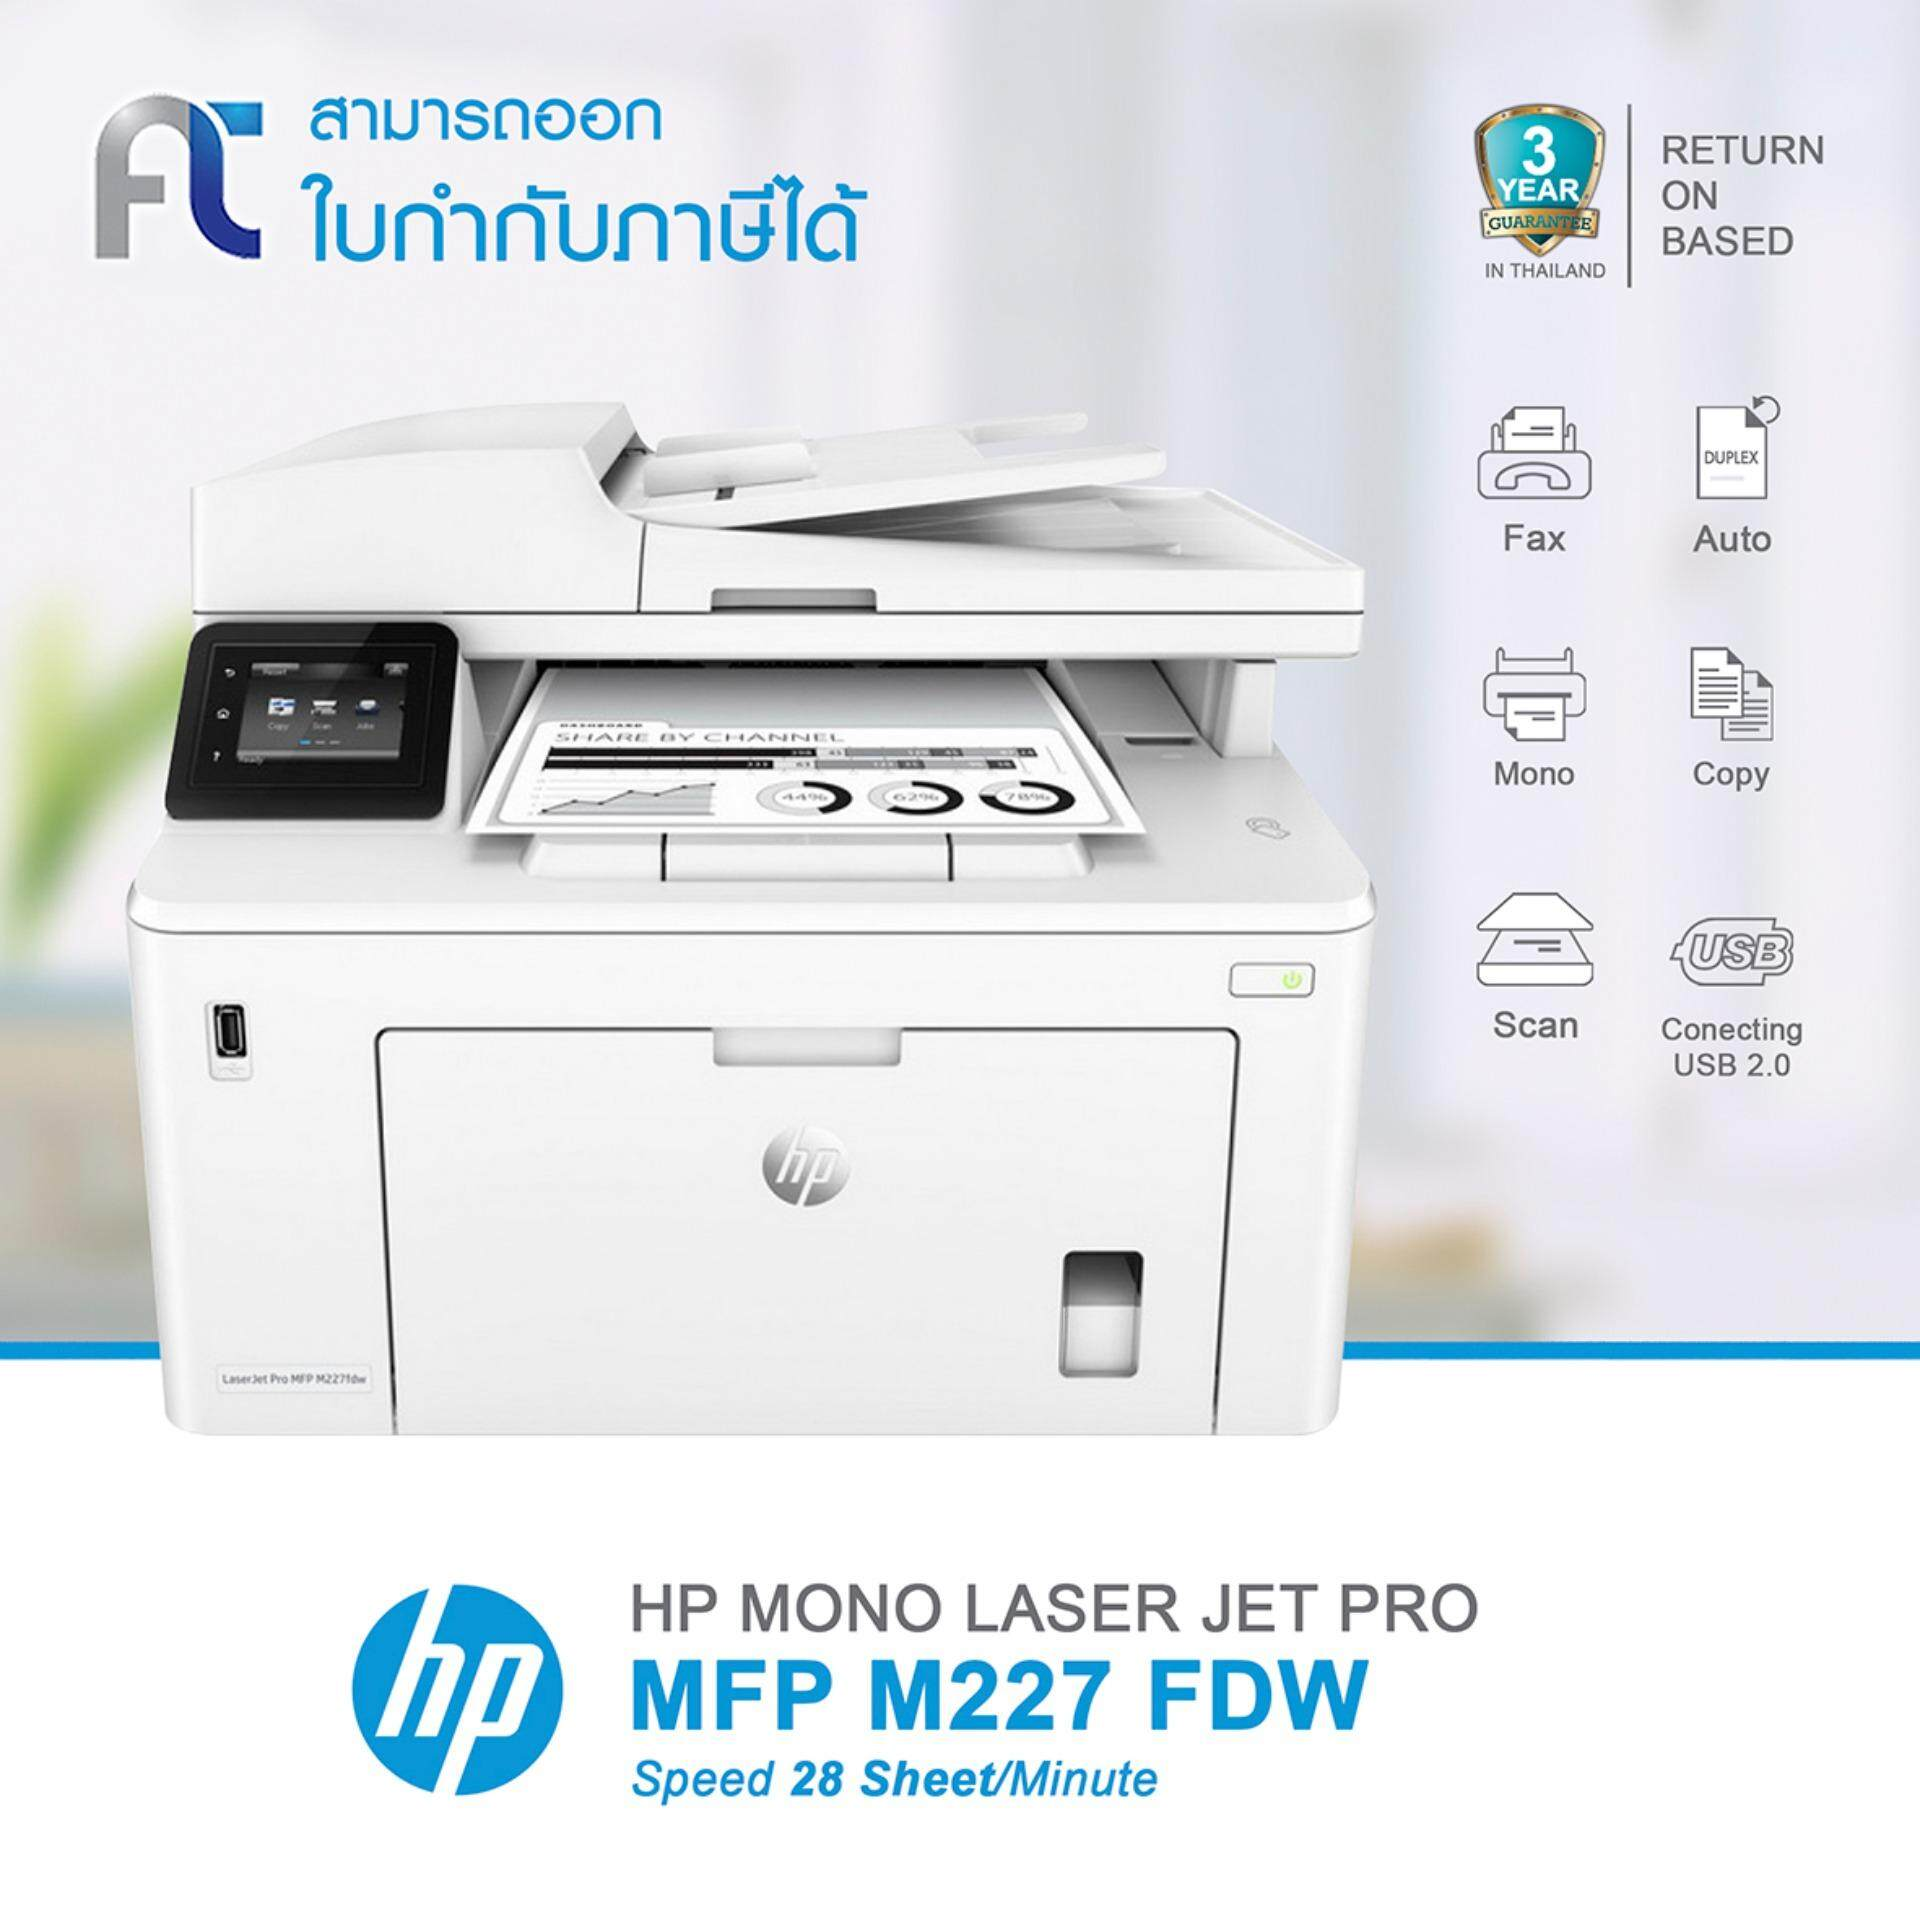 ขาย 3 Year Warranty Hp Laserjet Pro Mfp M227Fdw Print Copy Scan Fax Duplex Hp เป็นต้นฉบับ